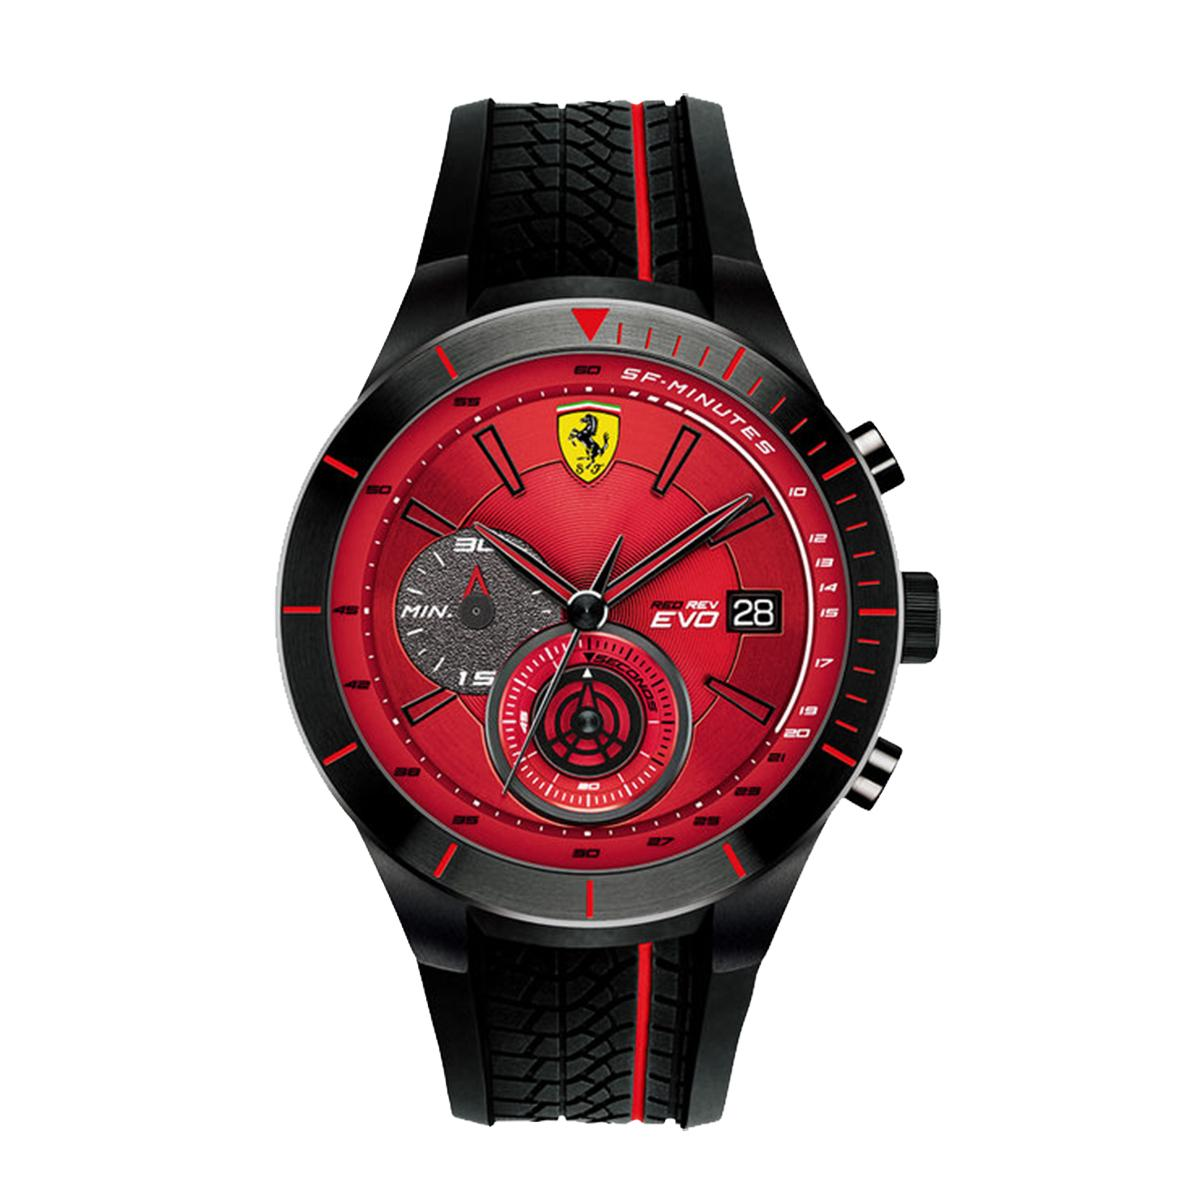 Cheapest Ferrari Watch Redrev Evo Black Stainless Steel Case Rubber Strap Mens 0830343 Online